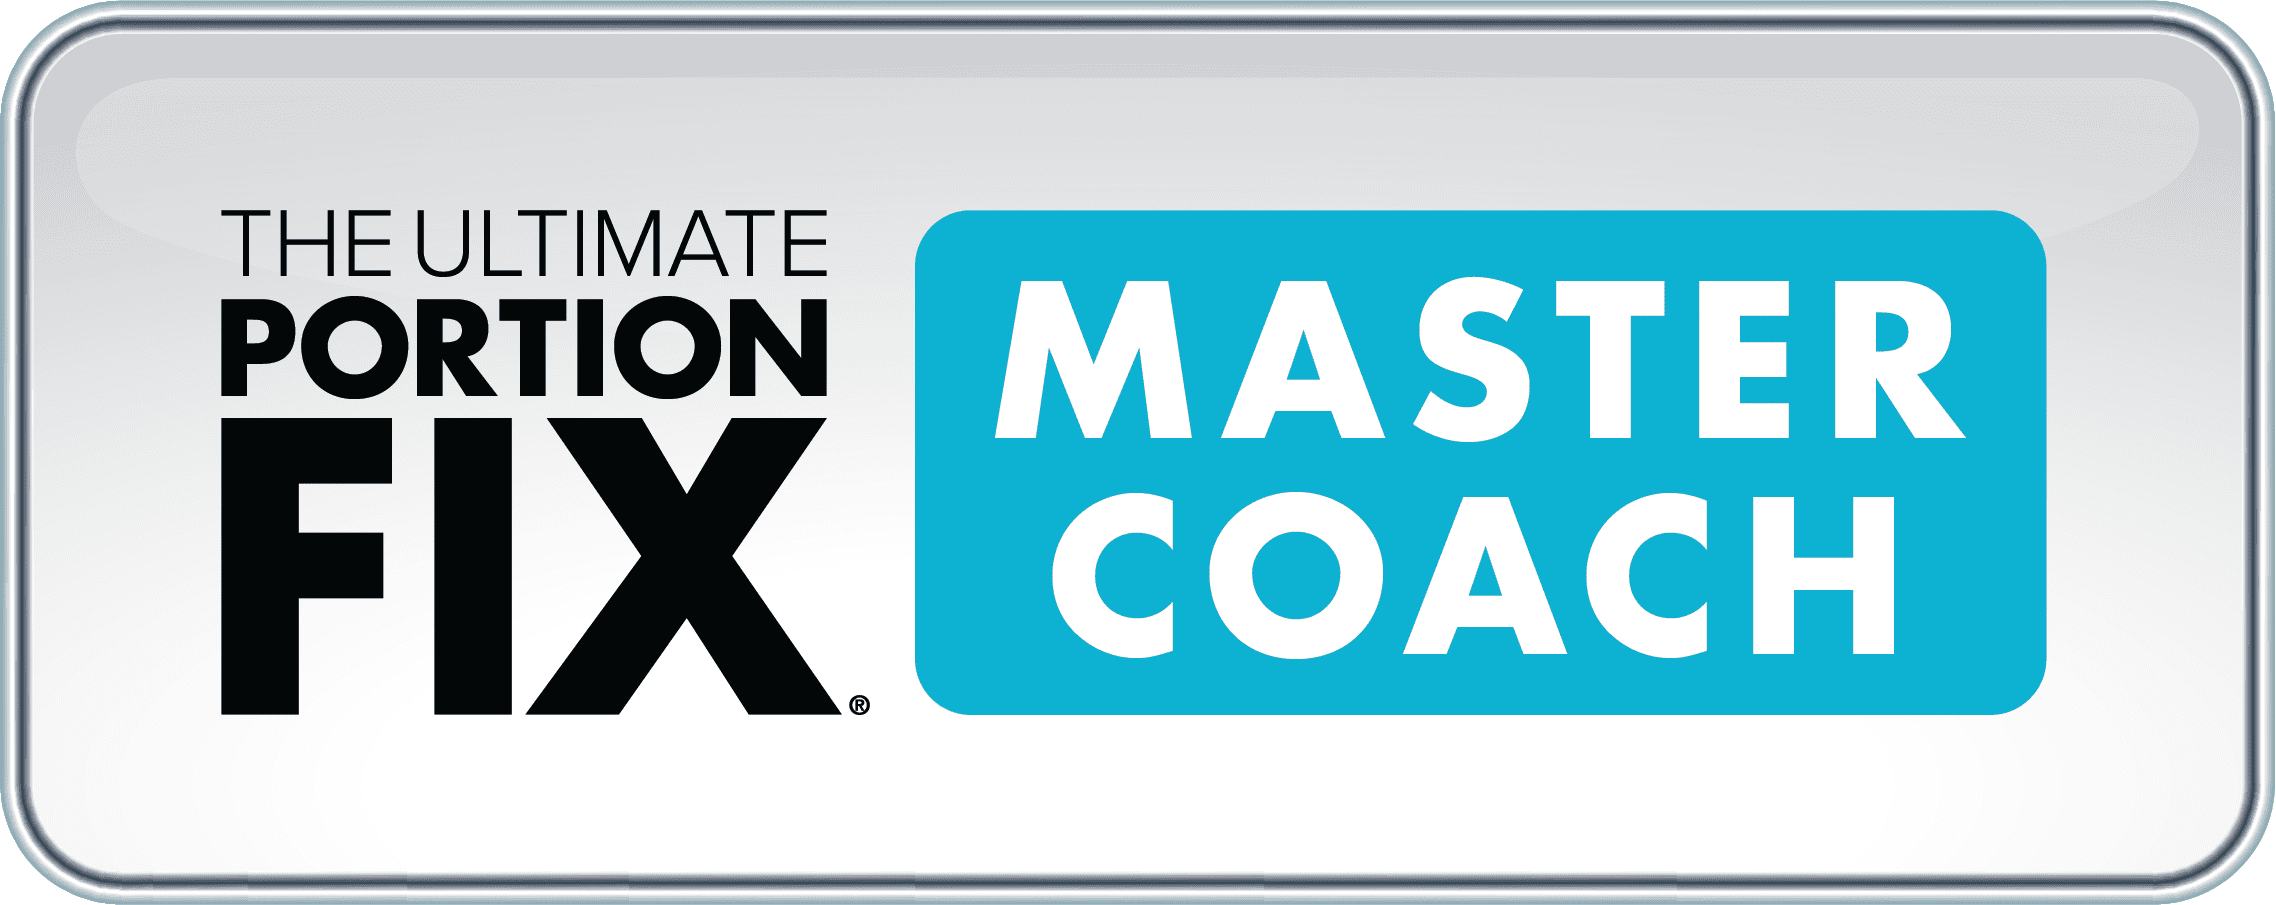 ultimate portion fix master coach